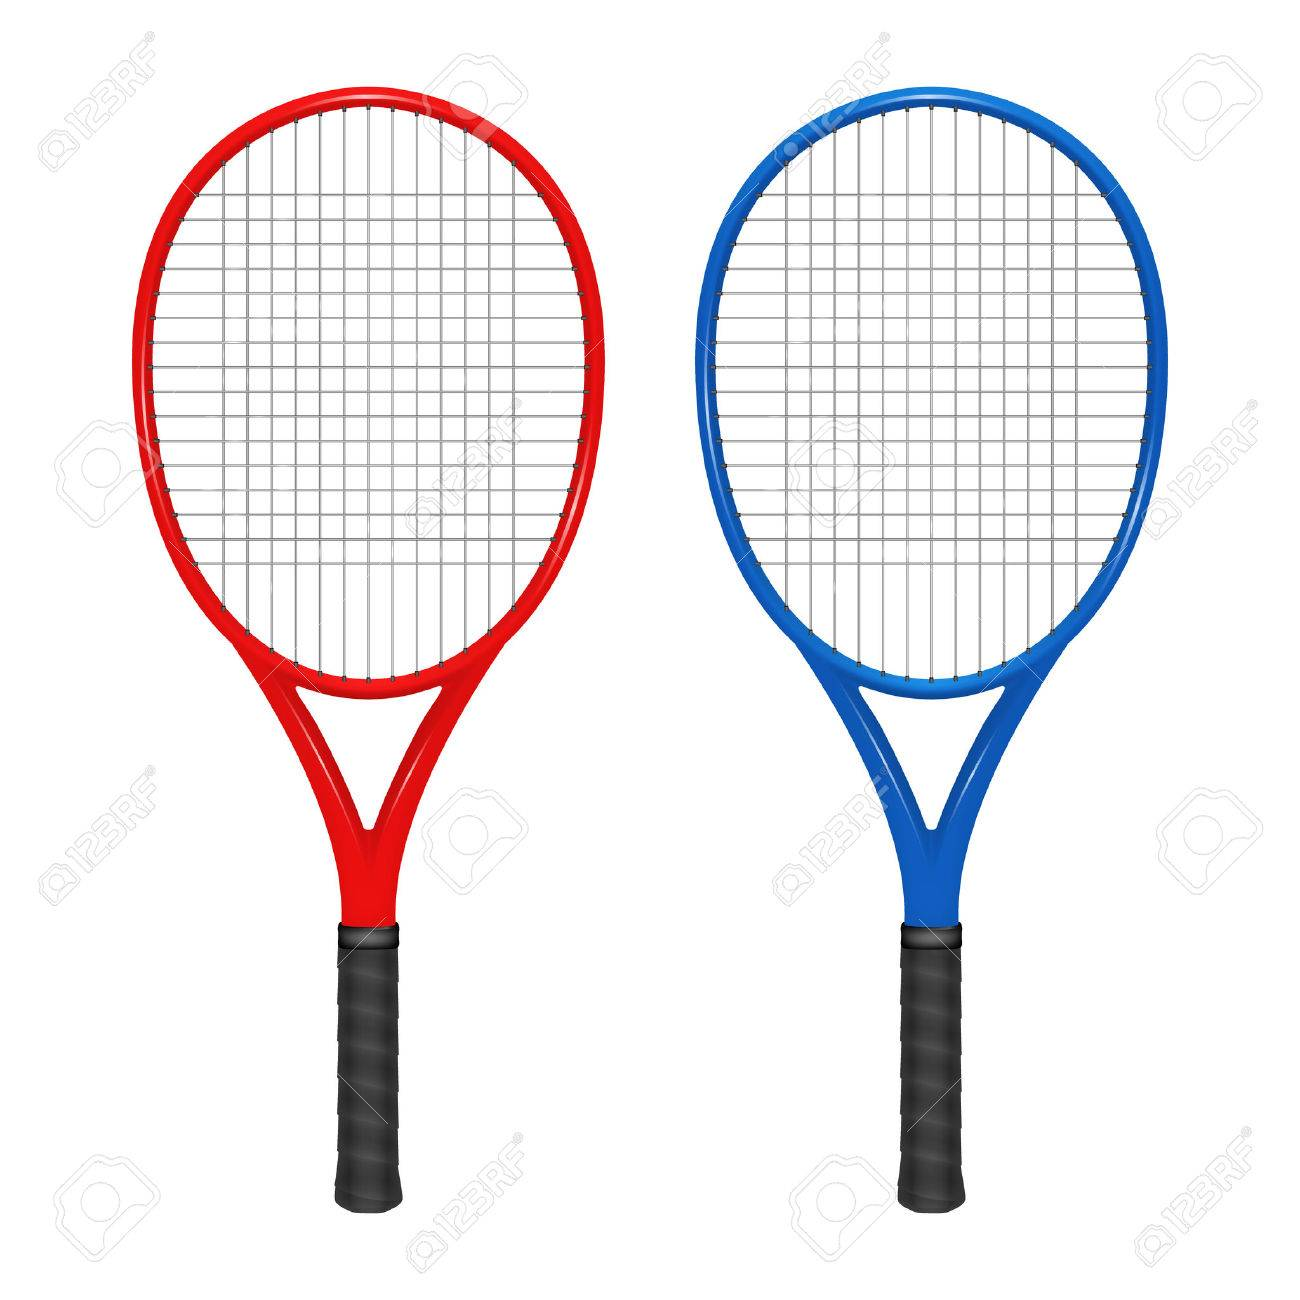 Two tennis rackets - red and blue. - 39890958